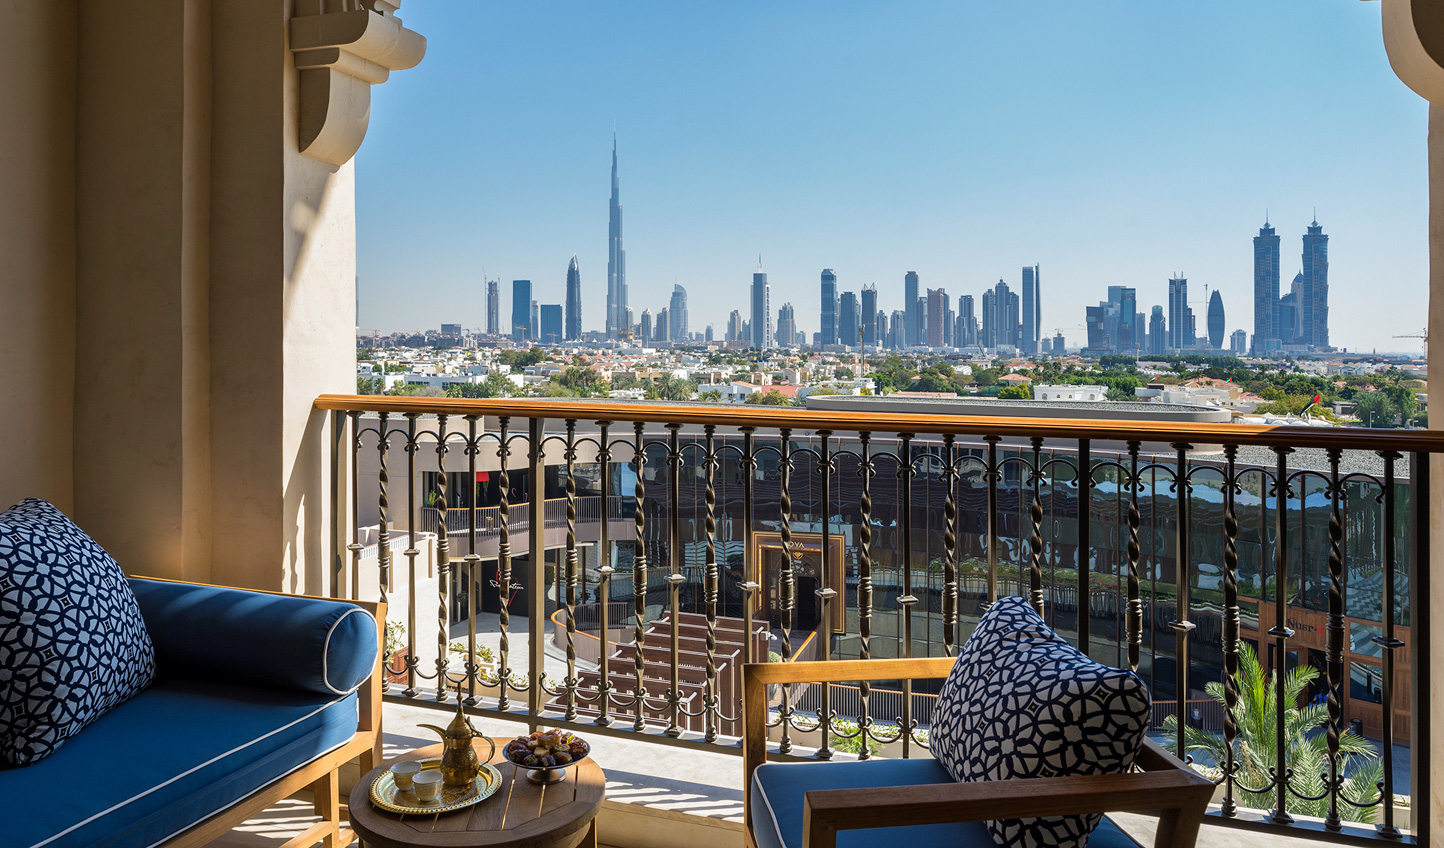 Head out onto your balcony and watch the sun slowly creep up into the sky over the skyline beyond